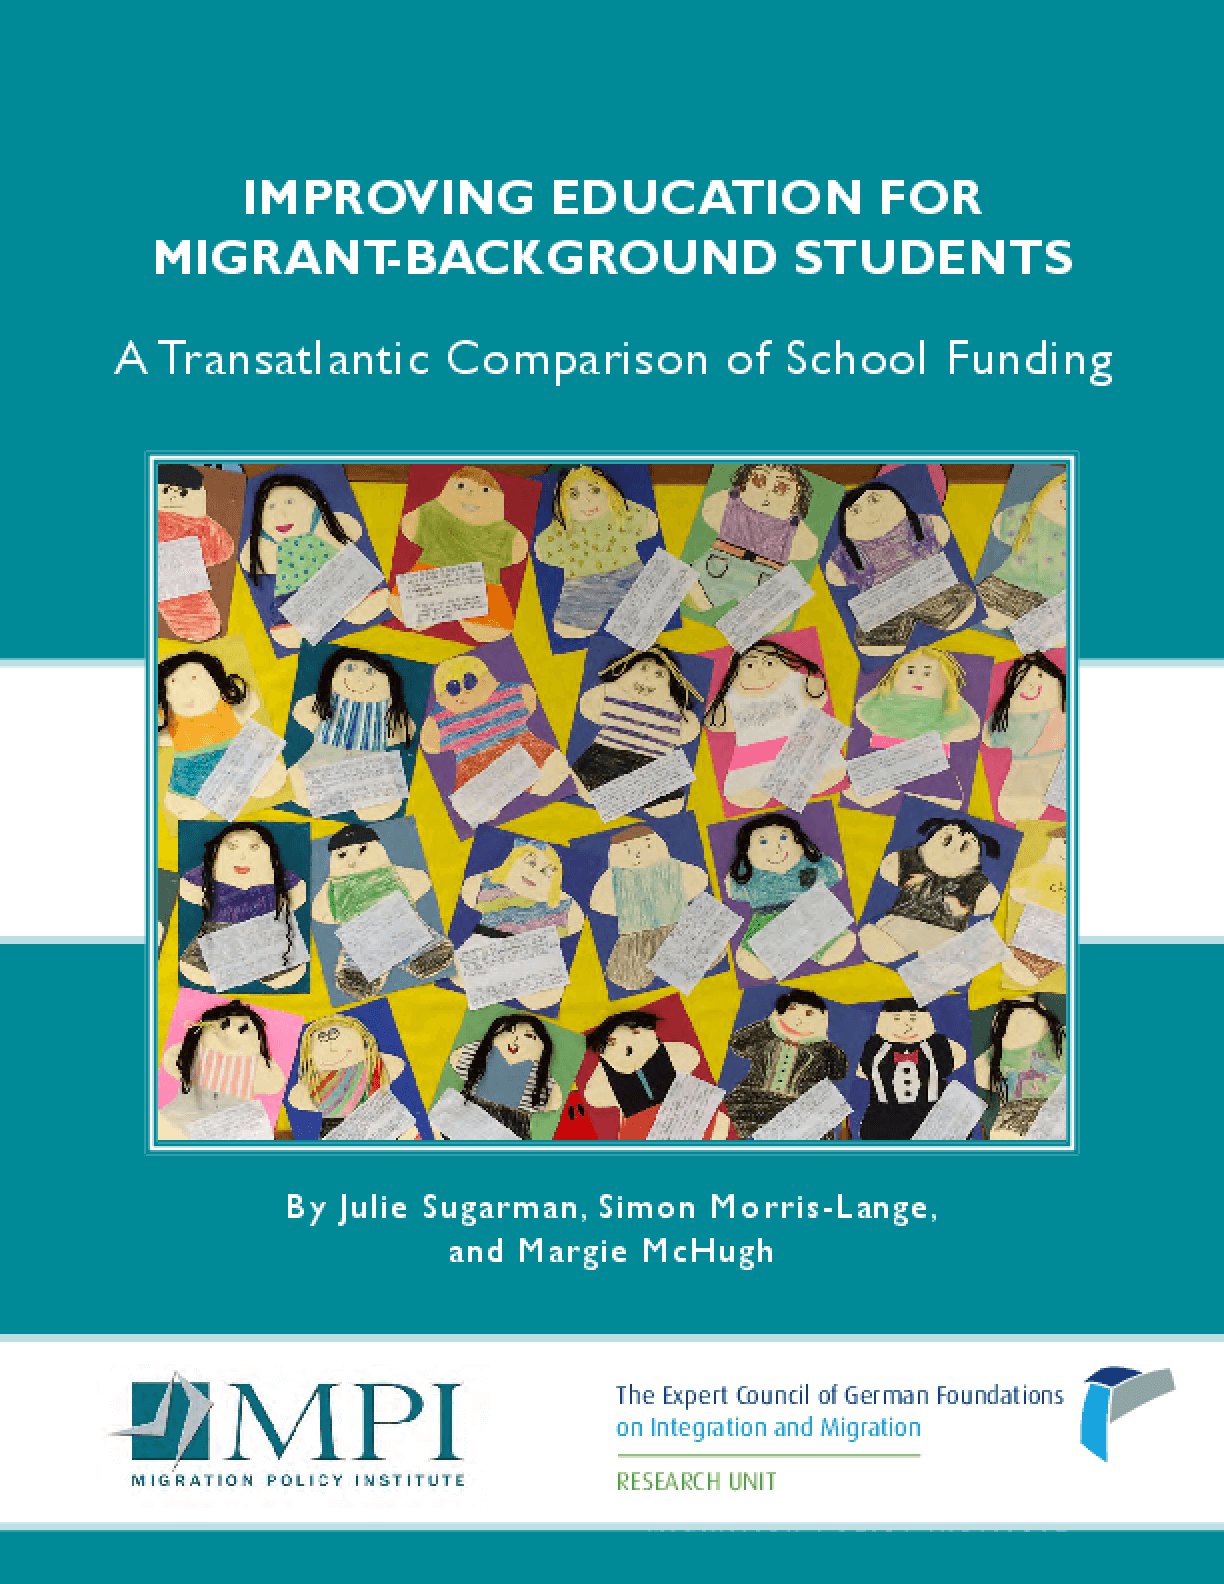 Improving Education for Migrant-Background Students: A Transatlantic Comparison of School Funding